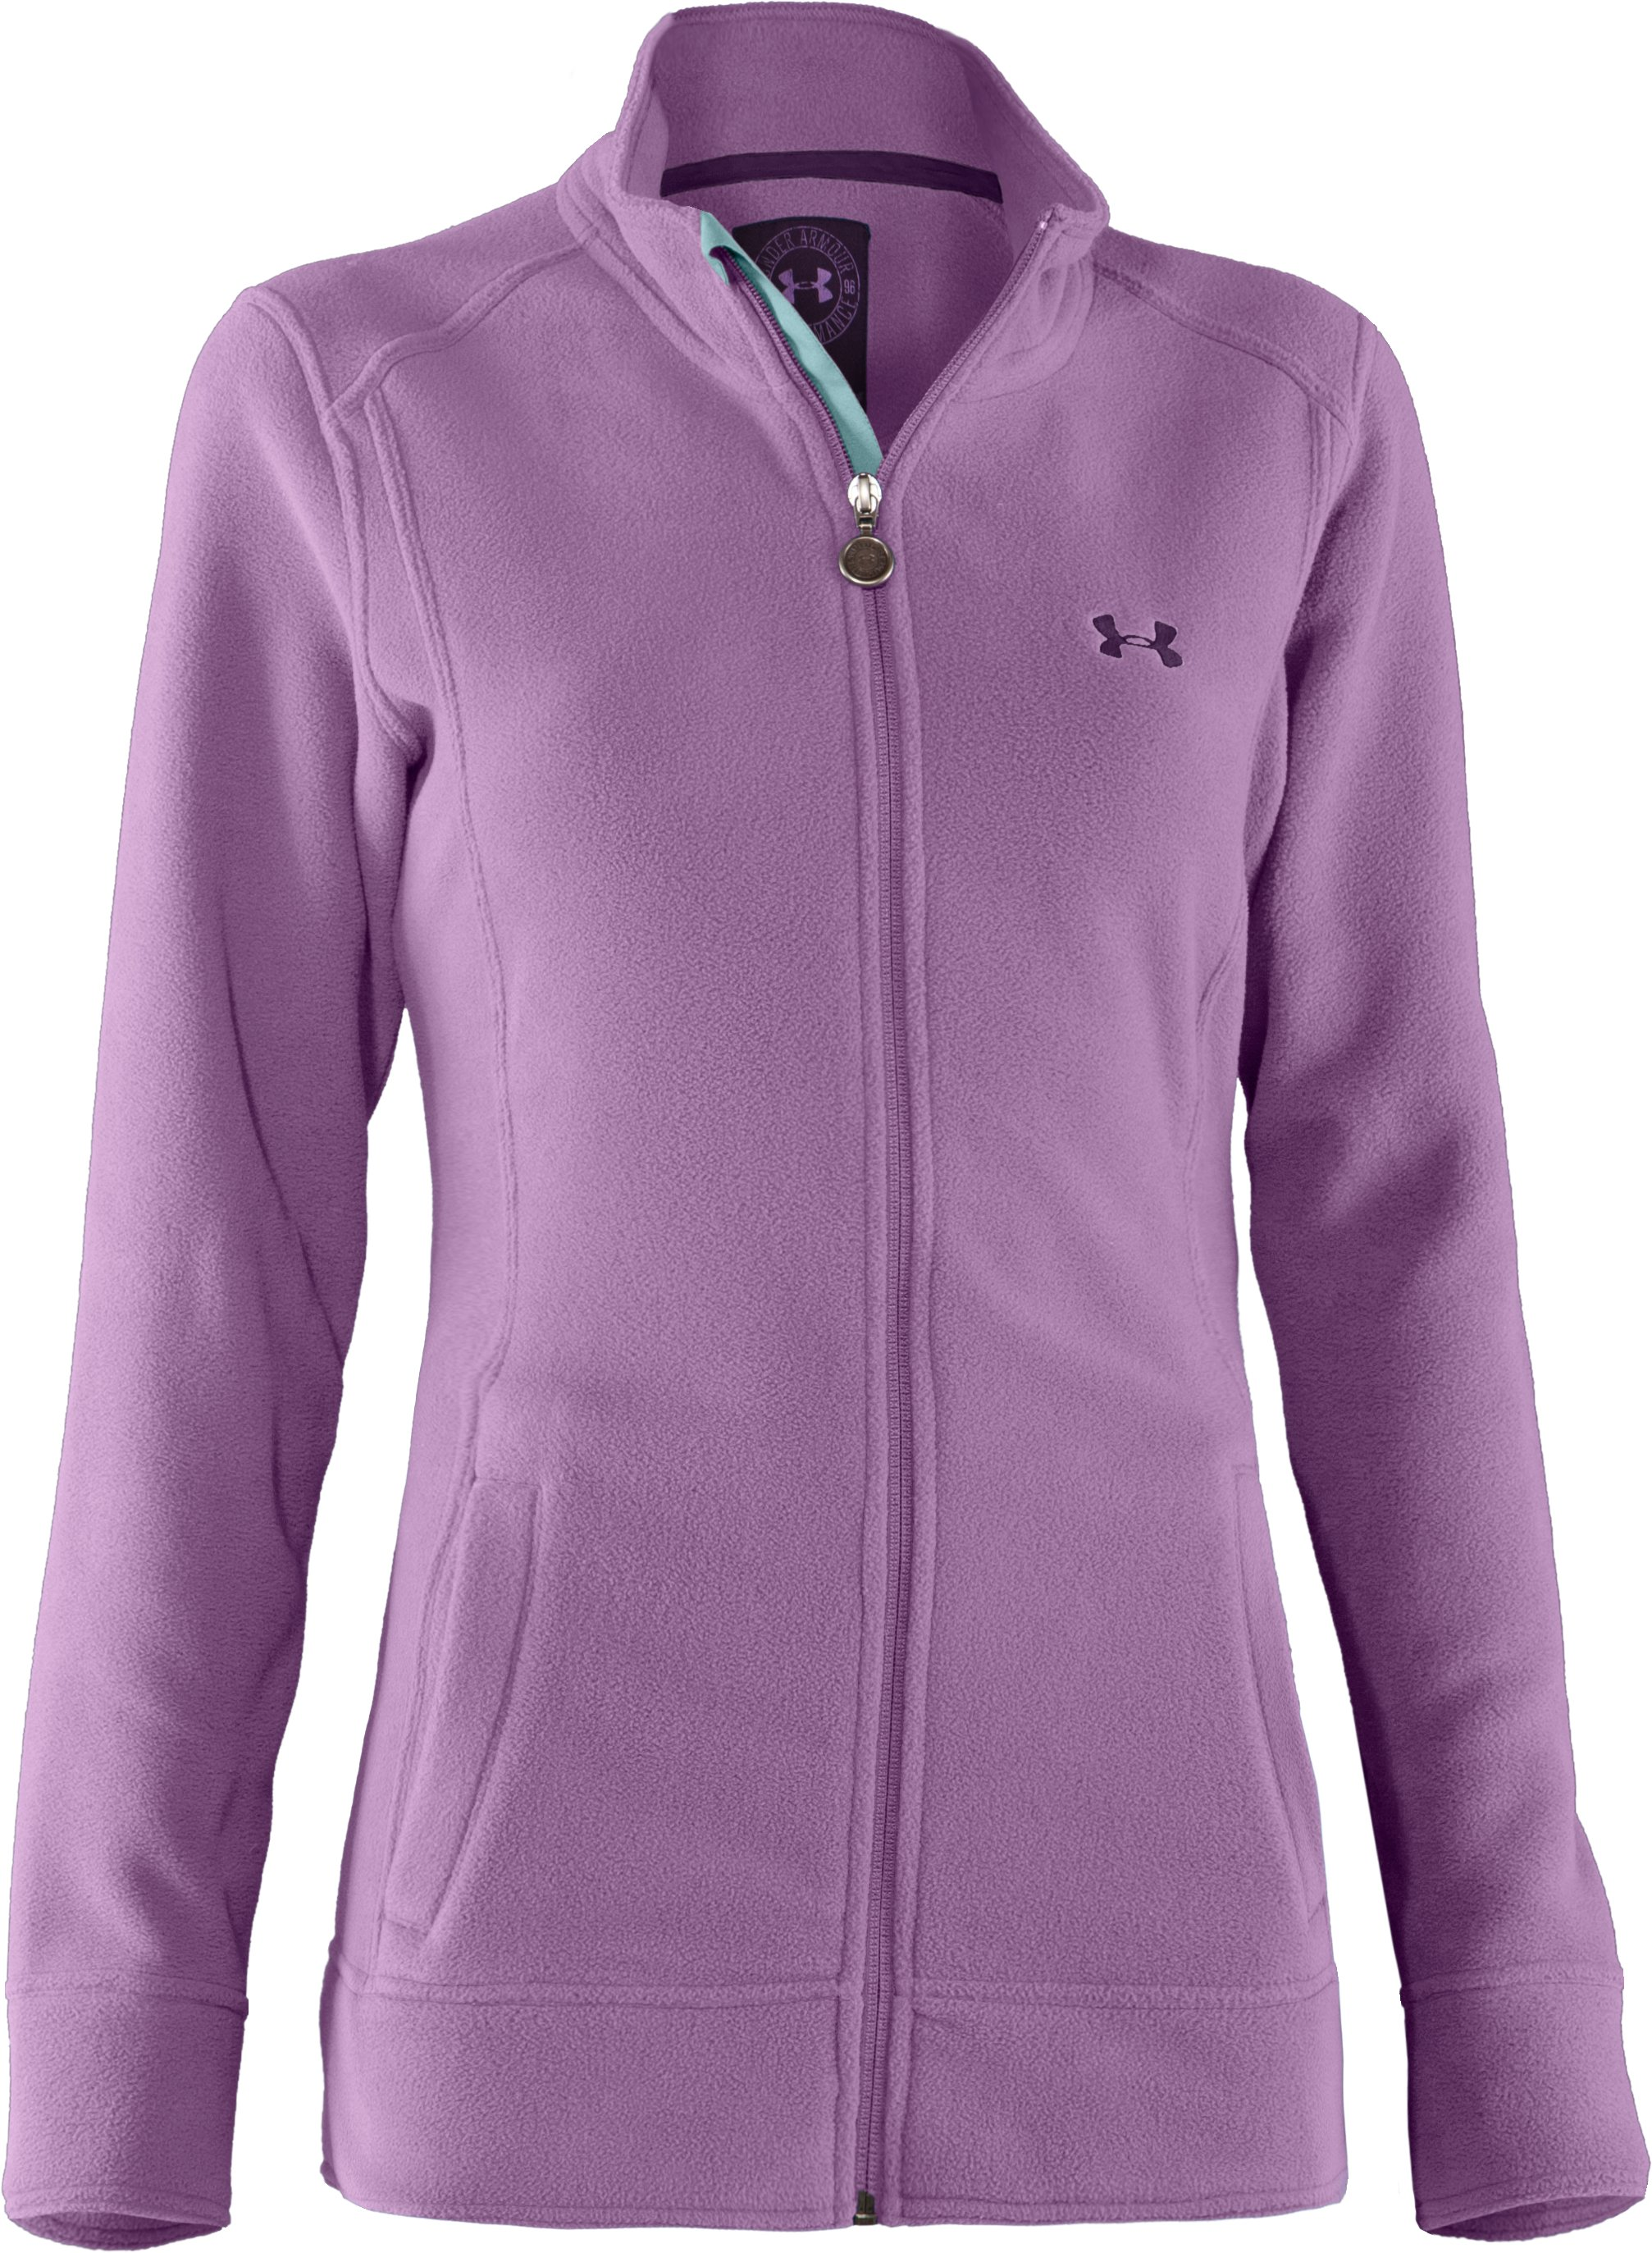 Women's Double Hundo® Full Zip Fleece, Sugar Plum